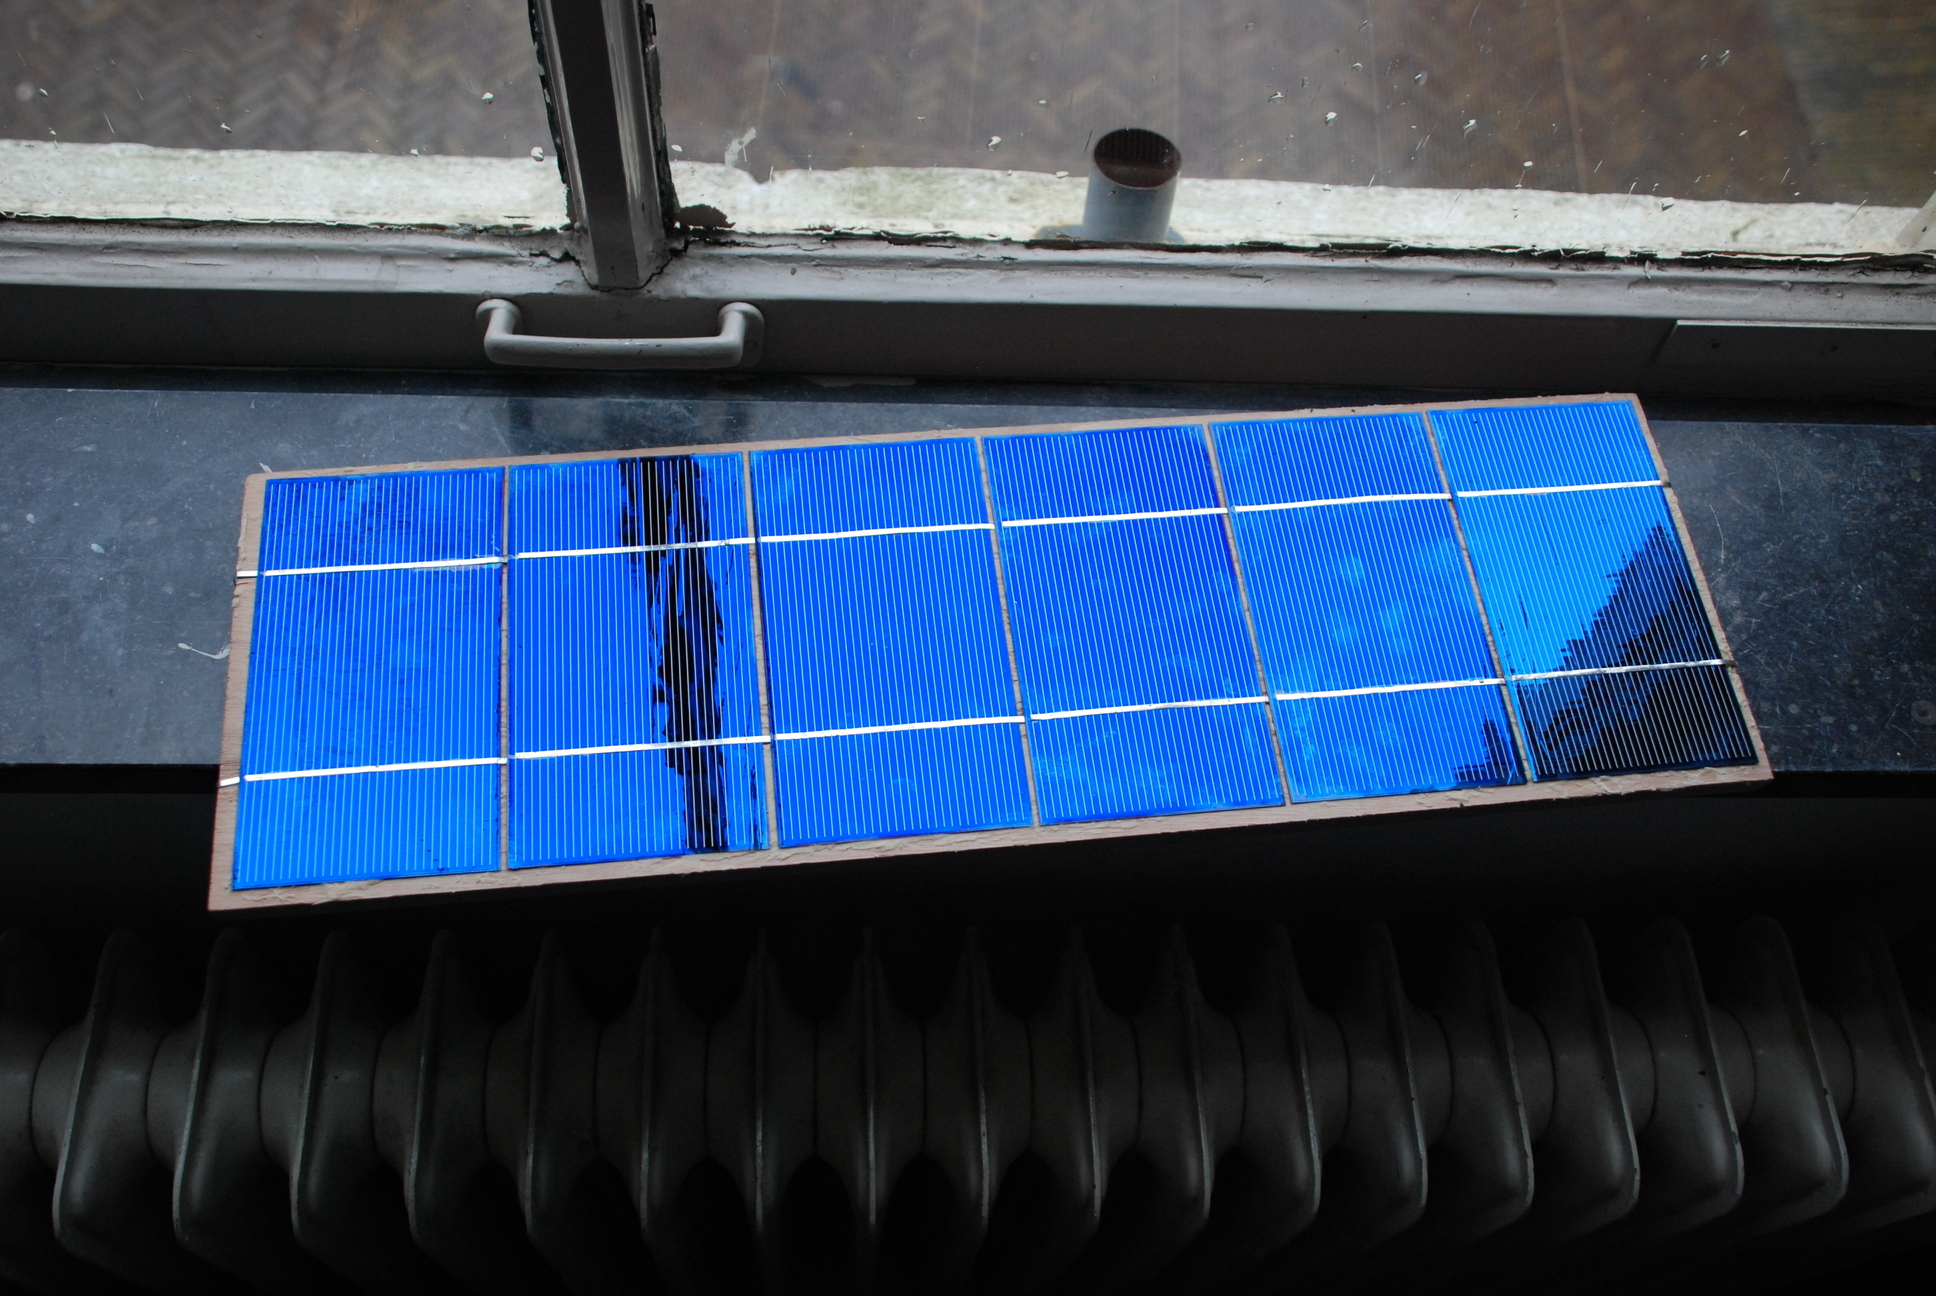 Homemade solar panels | Home of the Hacking Tiger